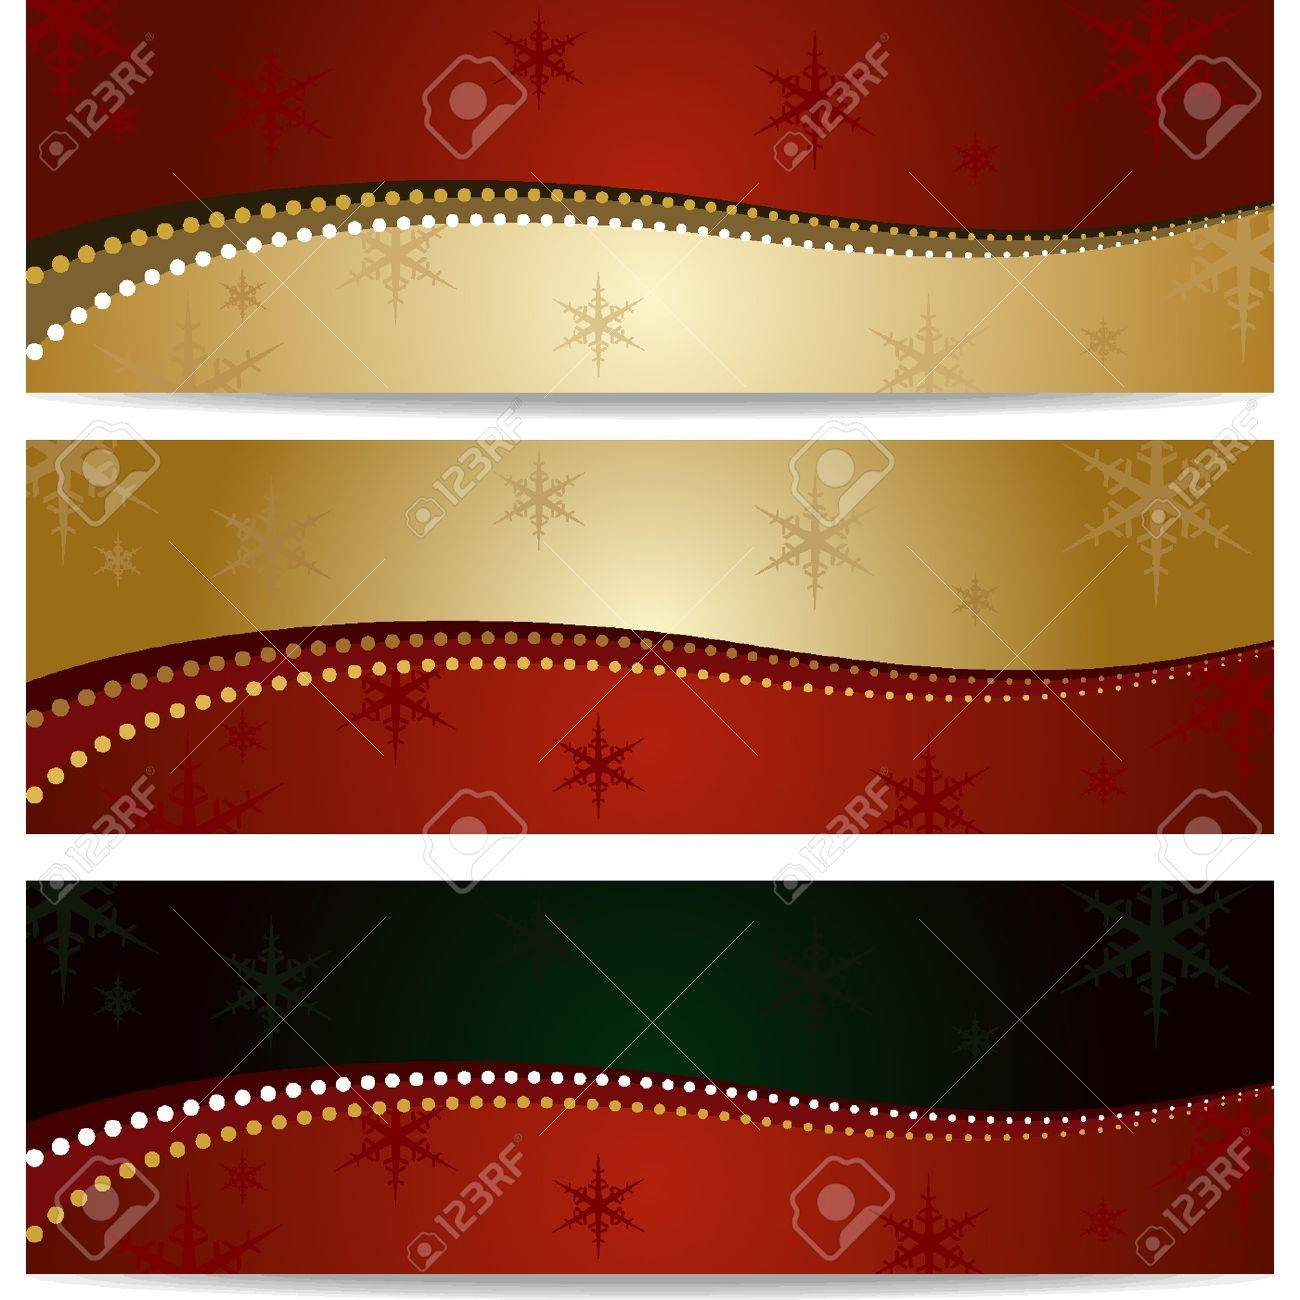 Elegant Christmas backgrounds four models Stock Vector - 18134277